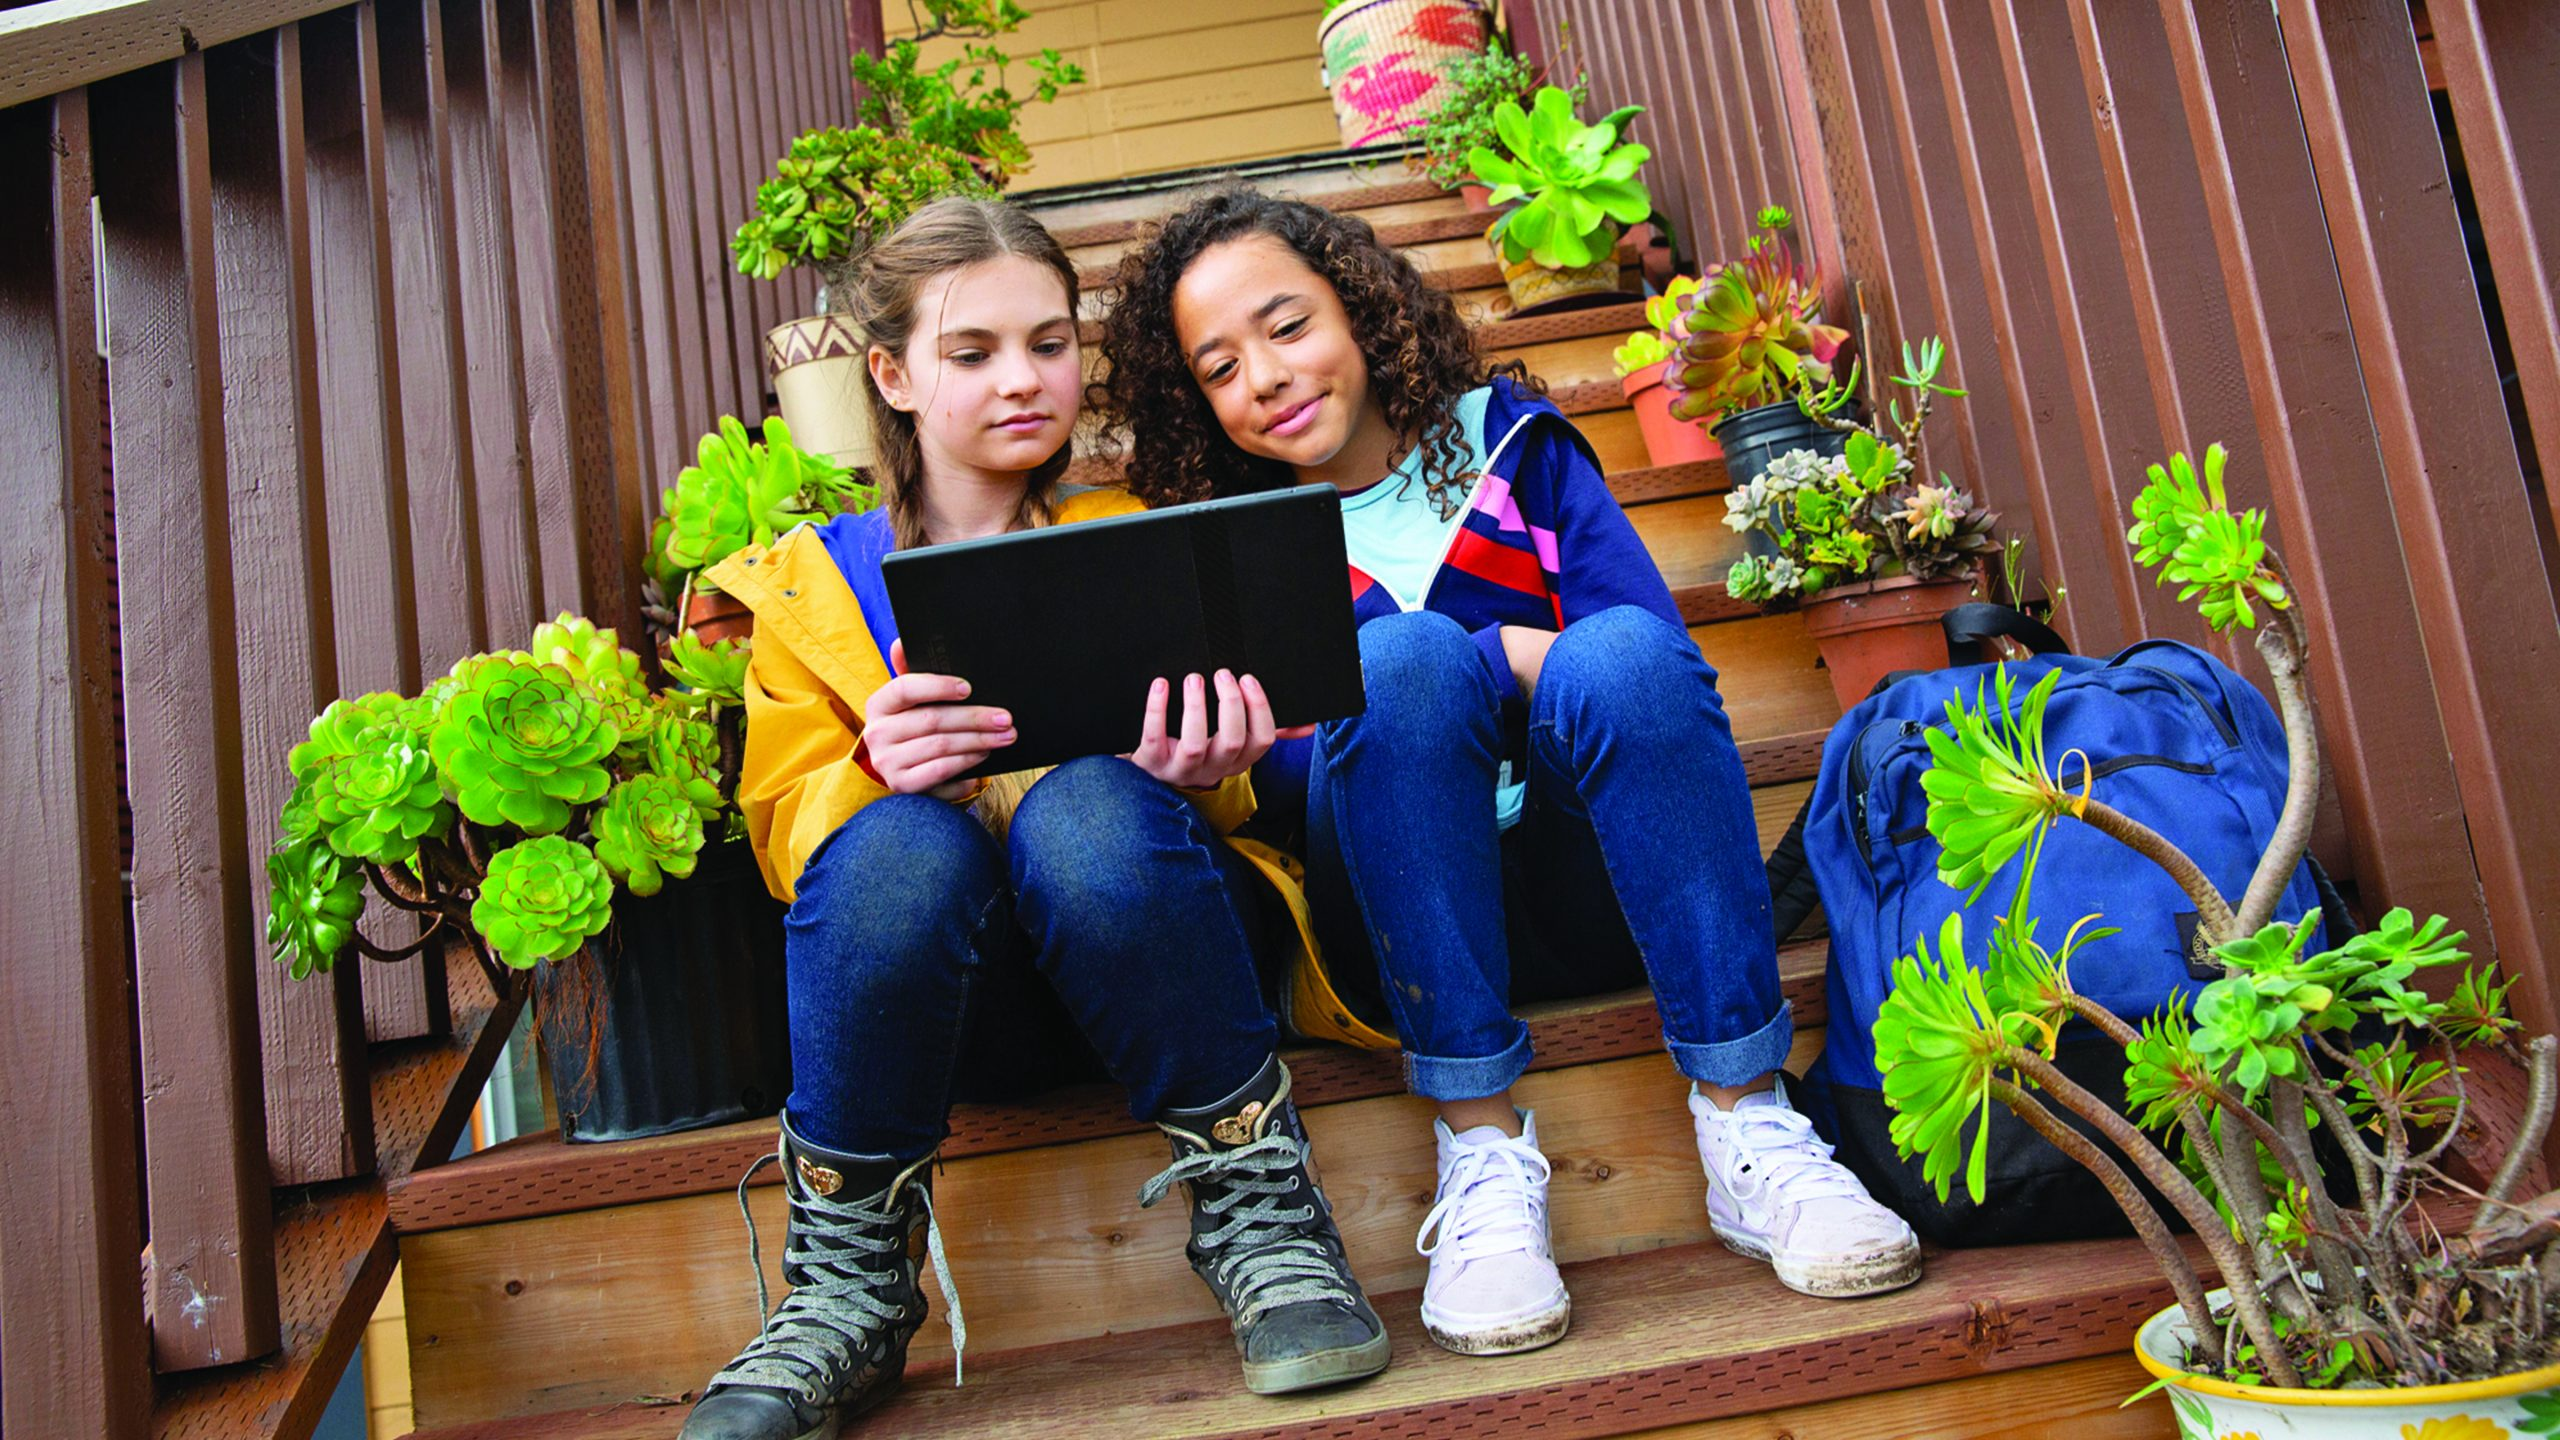 two girls sitting on outdoor steps, looking at a laptop screen